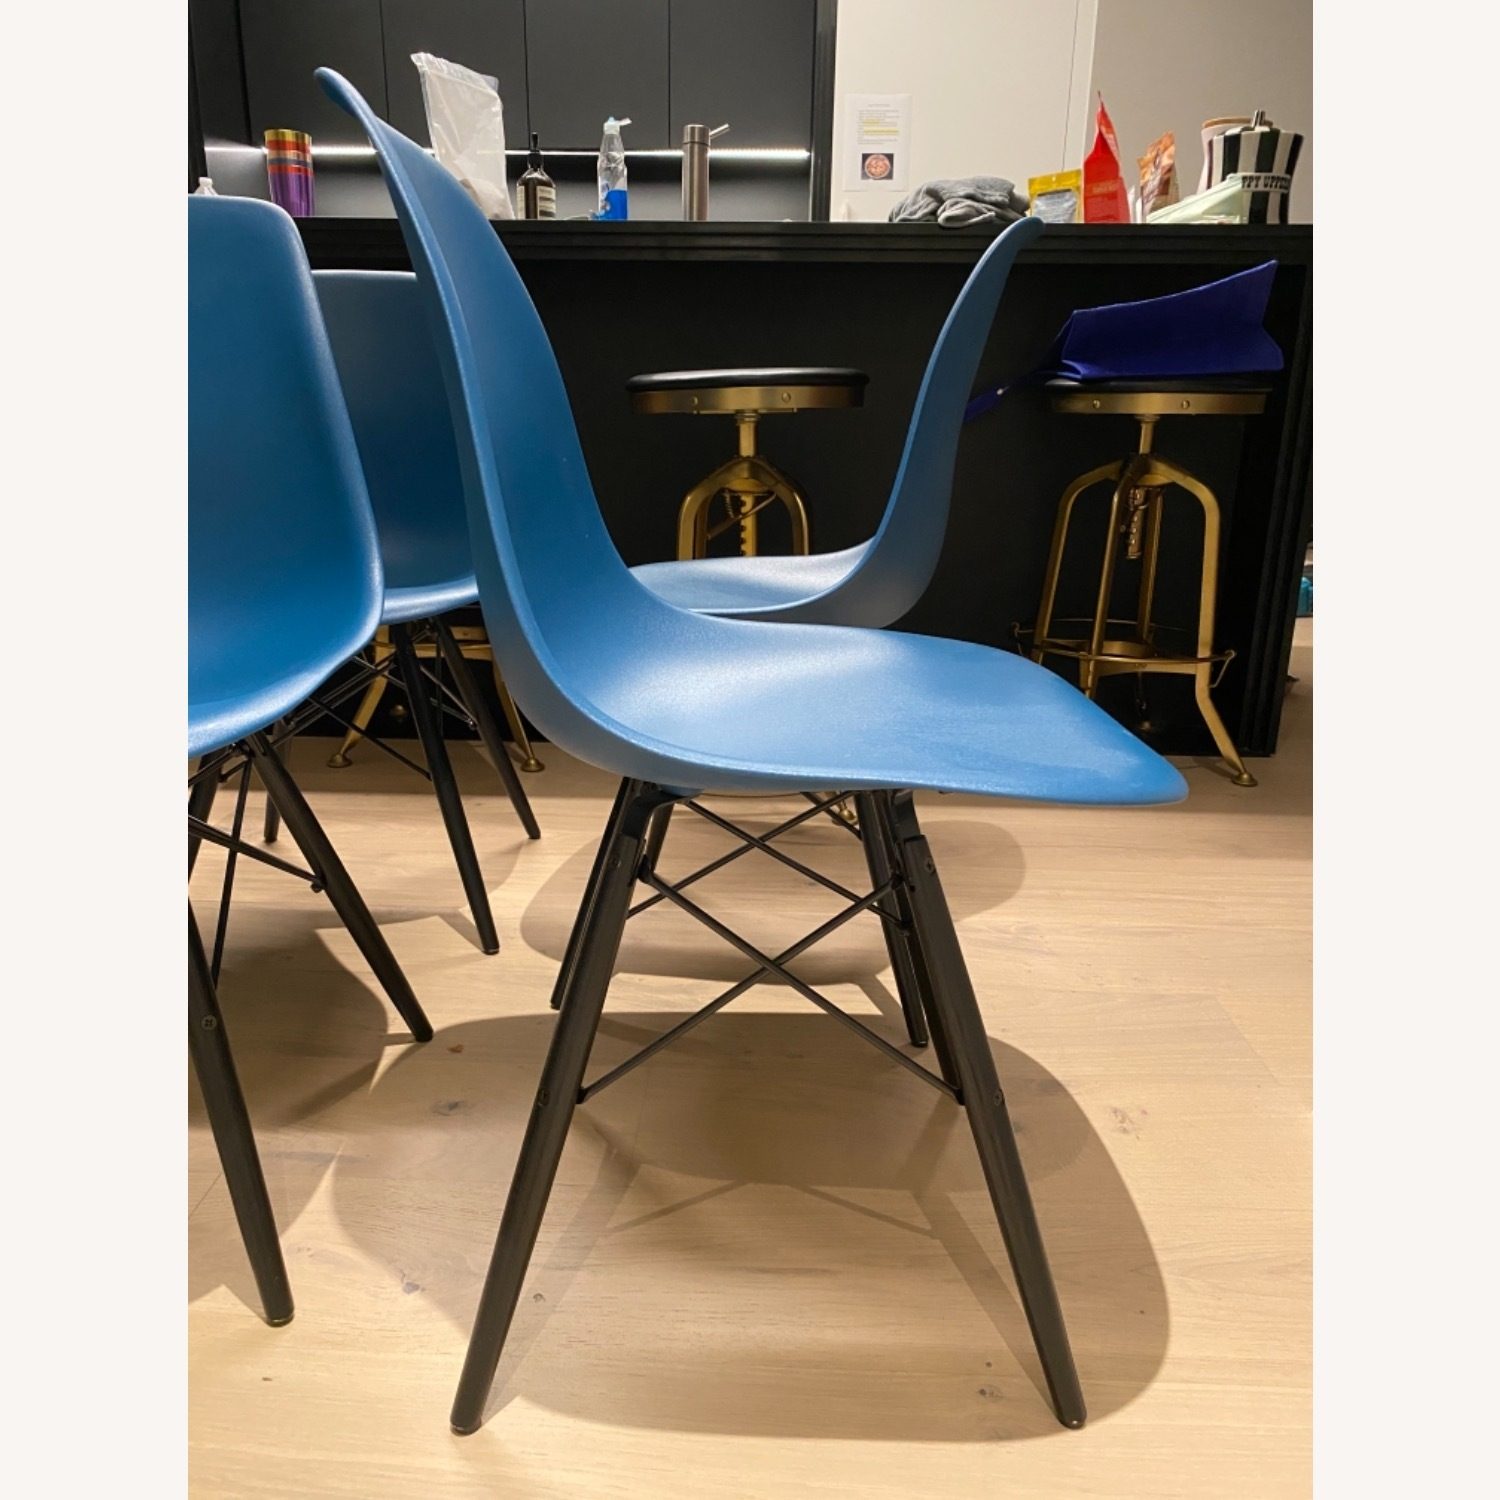 4 x Herman Miller Eames Molded Plastic Side Chair - image-20